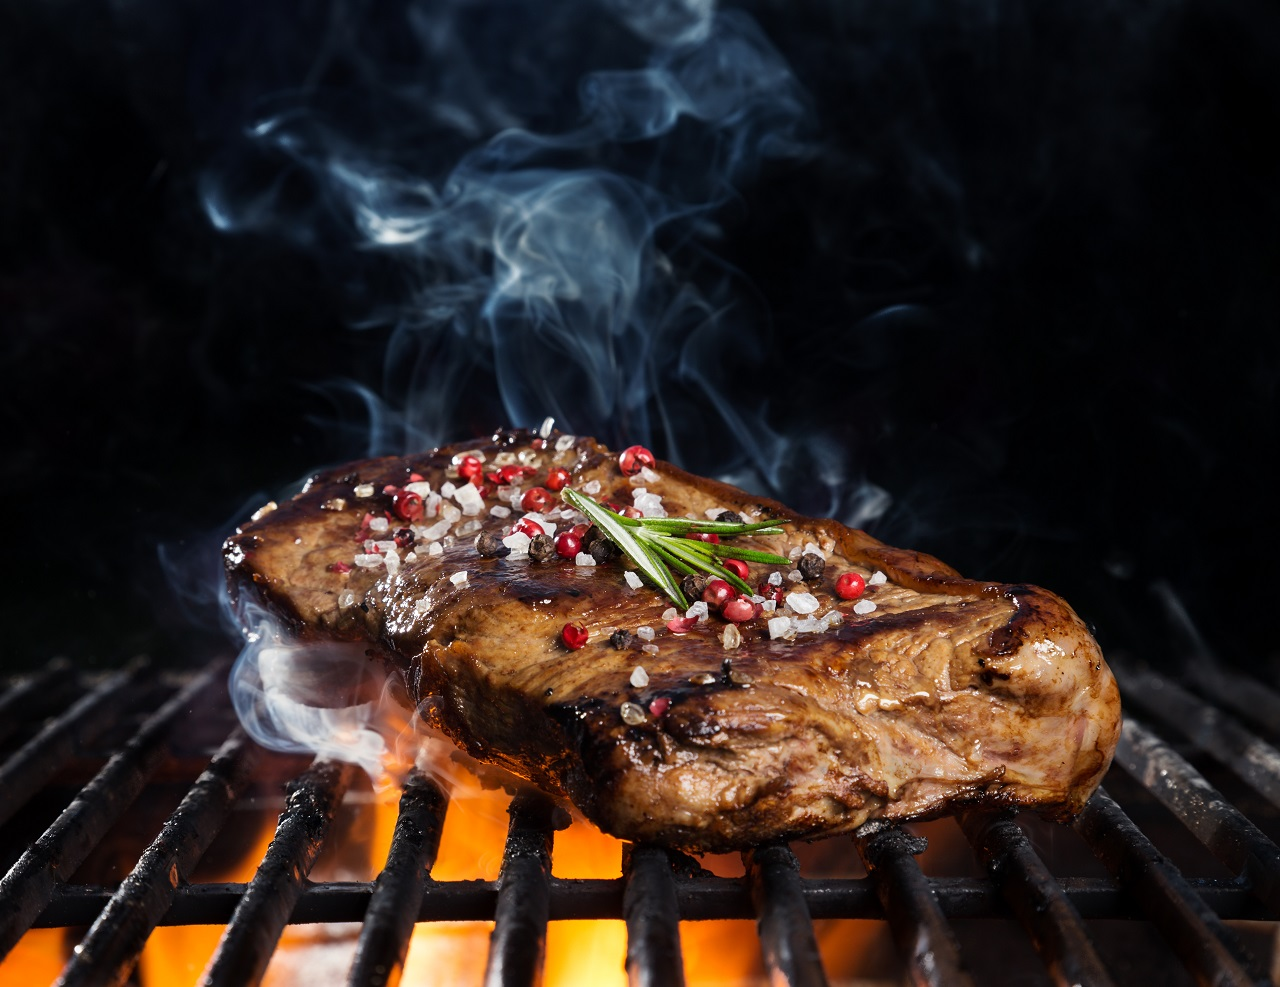 Beef-steak-on-grill-isolated-on-black-background